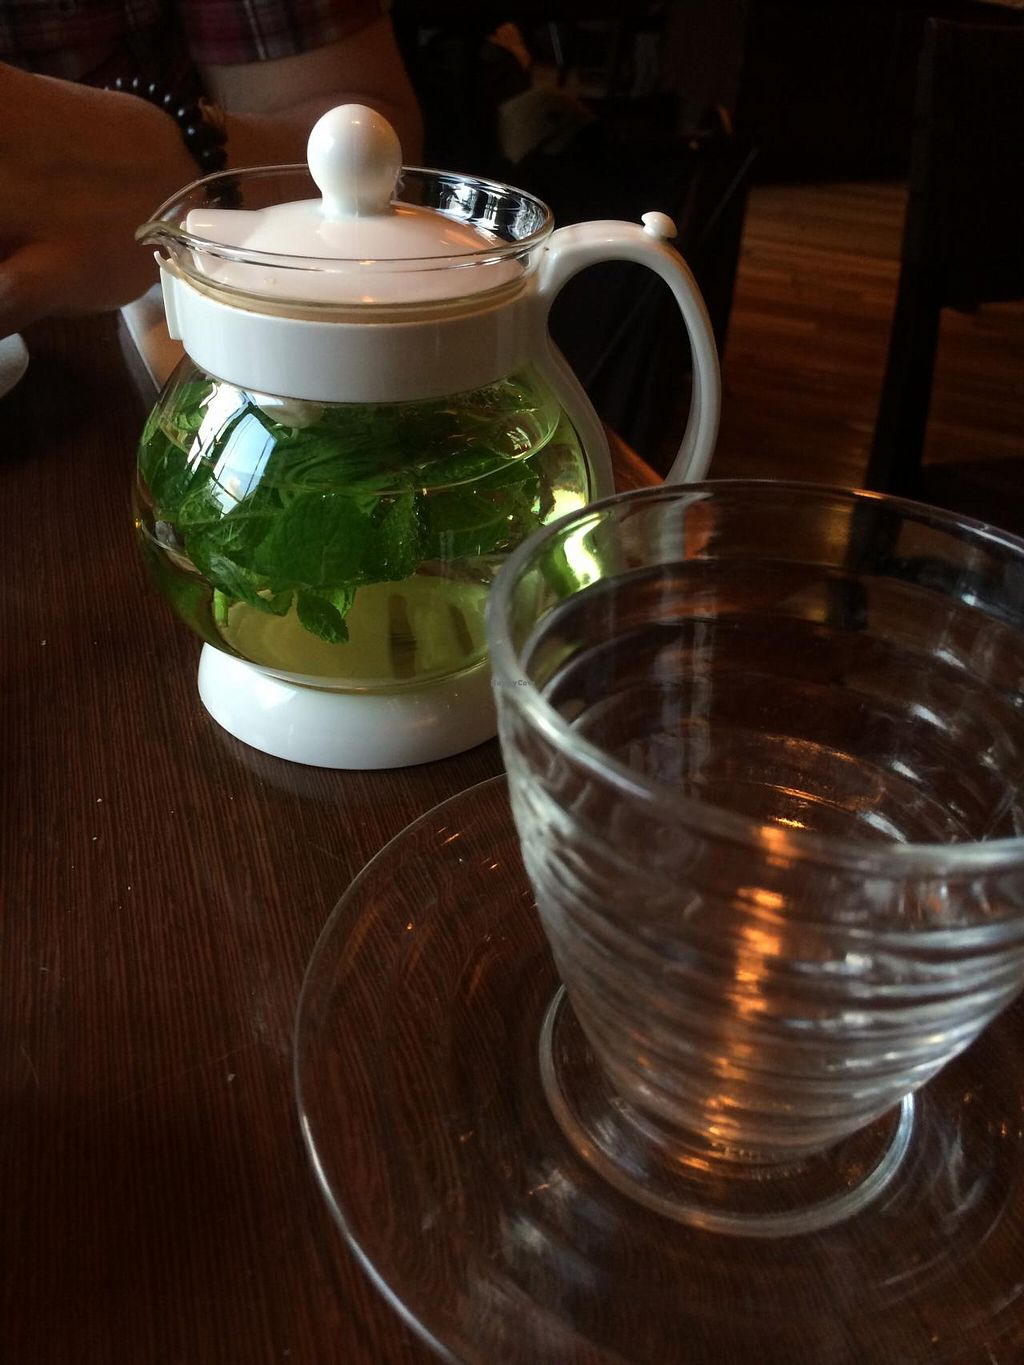 """Photo of Chaya Macrobiotics - Isetan Shinjuku  by <a href=""""/members/profile/Meggie%20and%20Ben"""">Meggie and Ben</a> <br/>Mint tea <br/> December 31, 2014  - <a href='/contact/abuse/image/20523/89103'>Report</a>"""